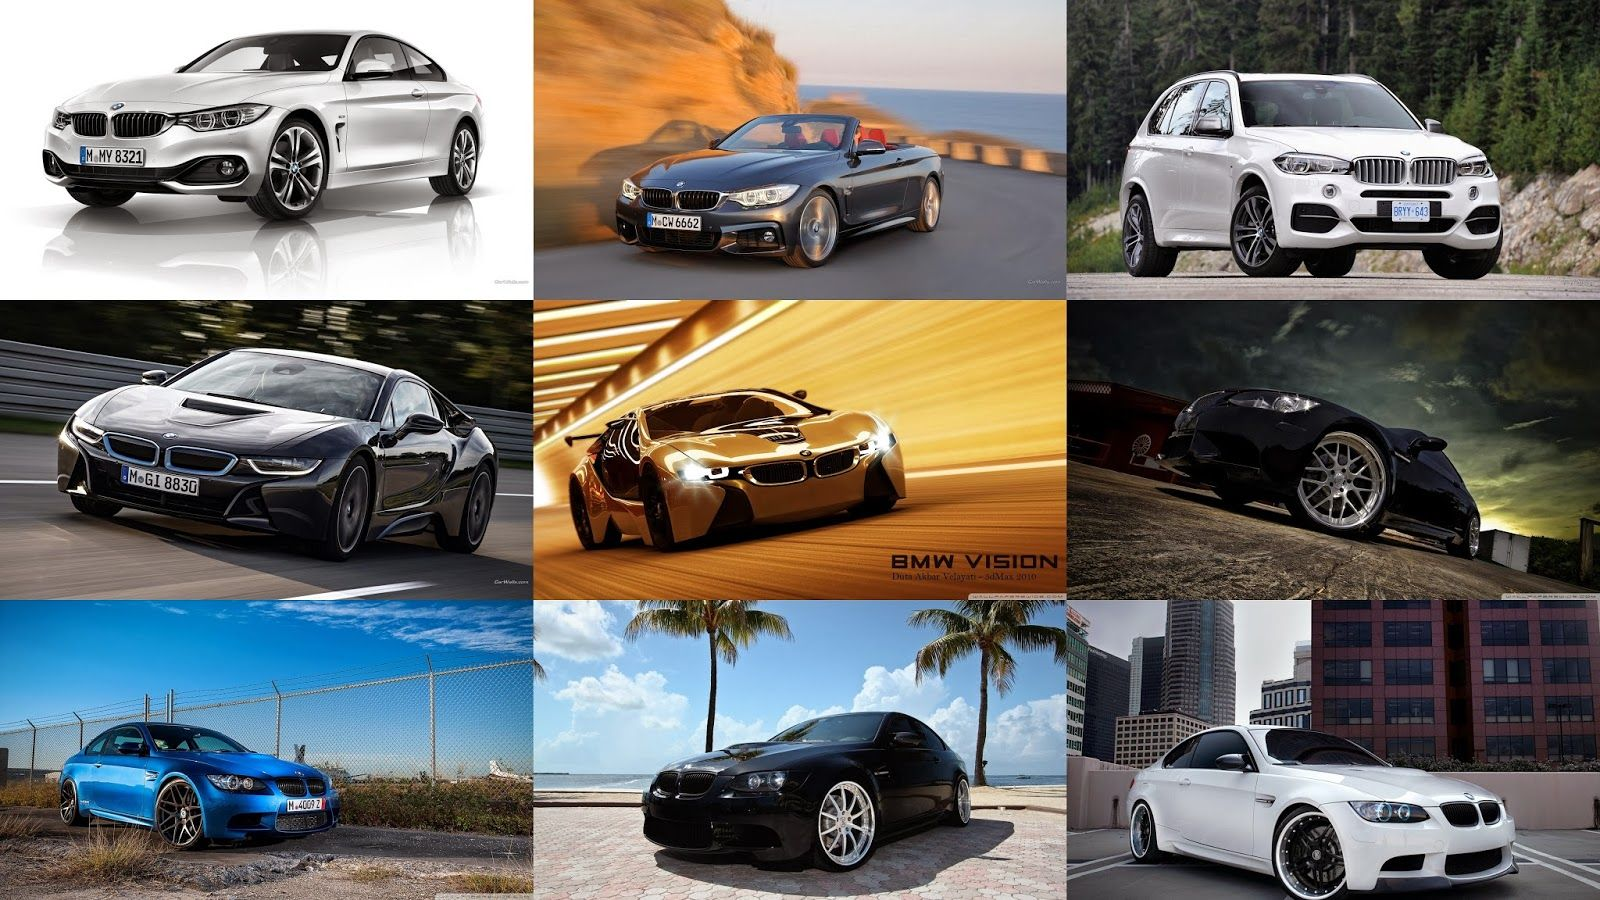 Download BMW Cars Wallpapers Pack Wallpaper Packs For Desktop